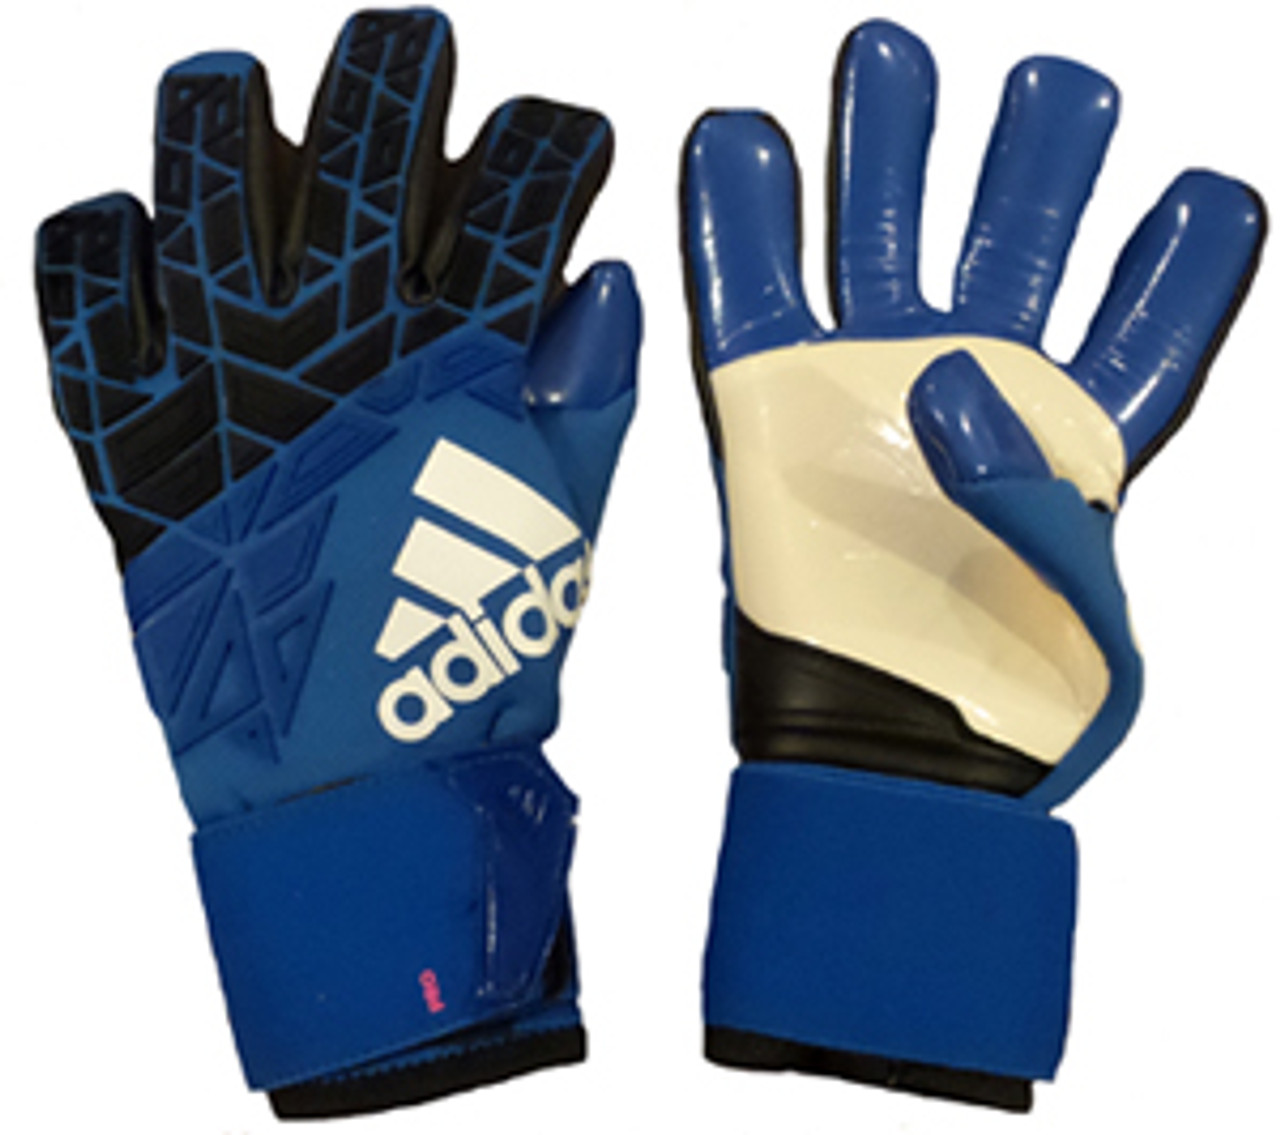 ADIDAS ACE TRANS PRO goalkeeper soccer gloves black blue - Soccer Plus 948f6b85ae